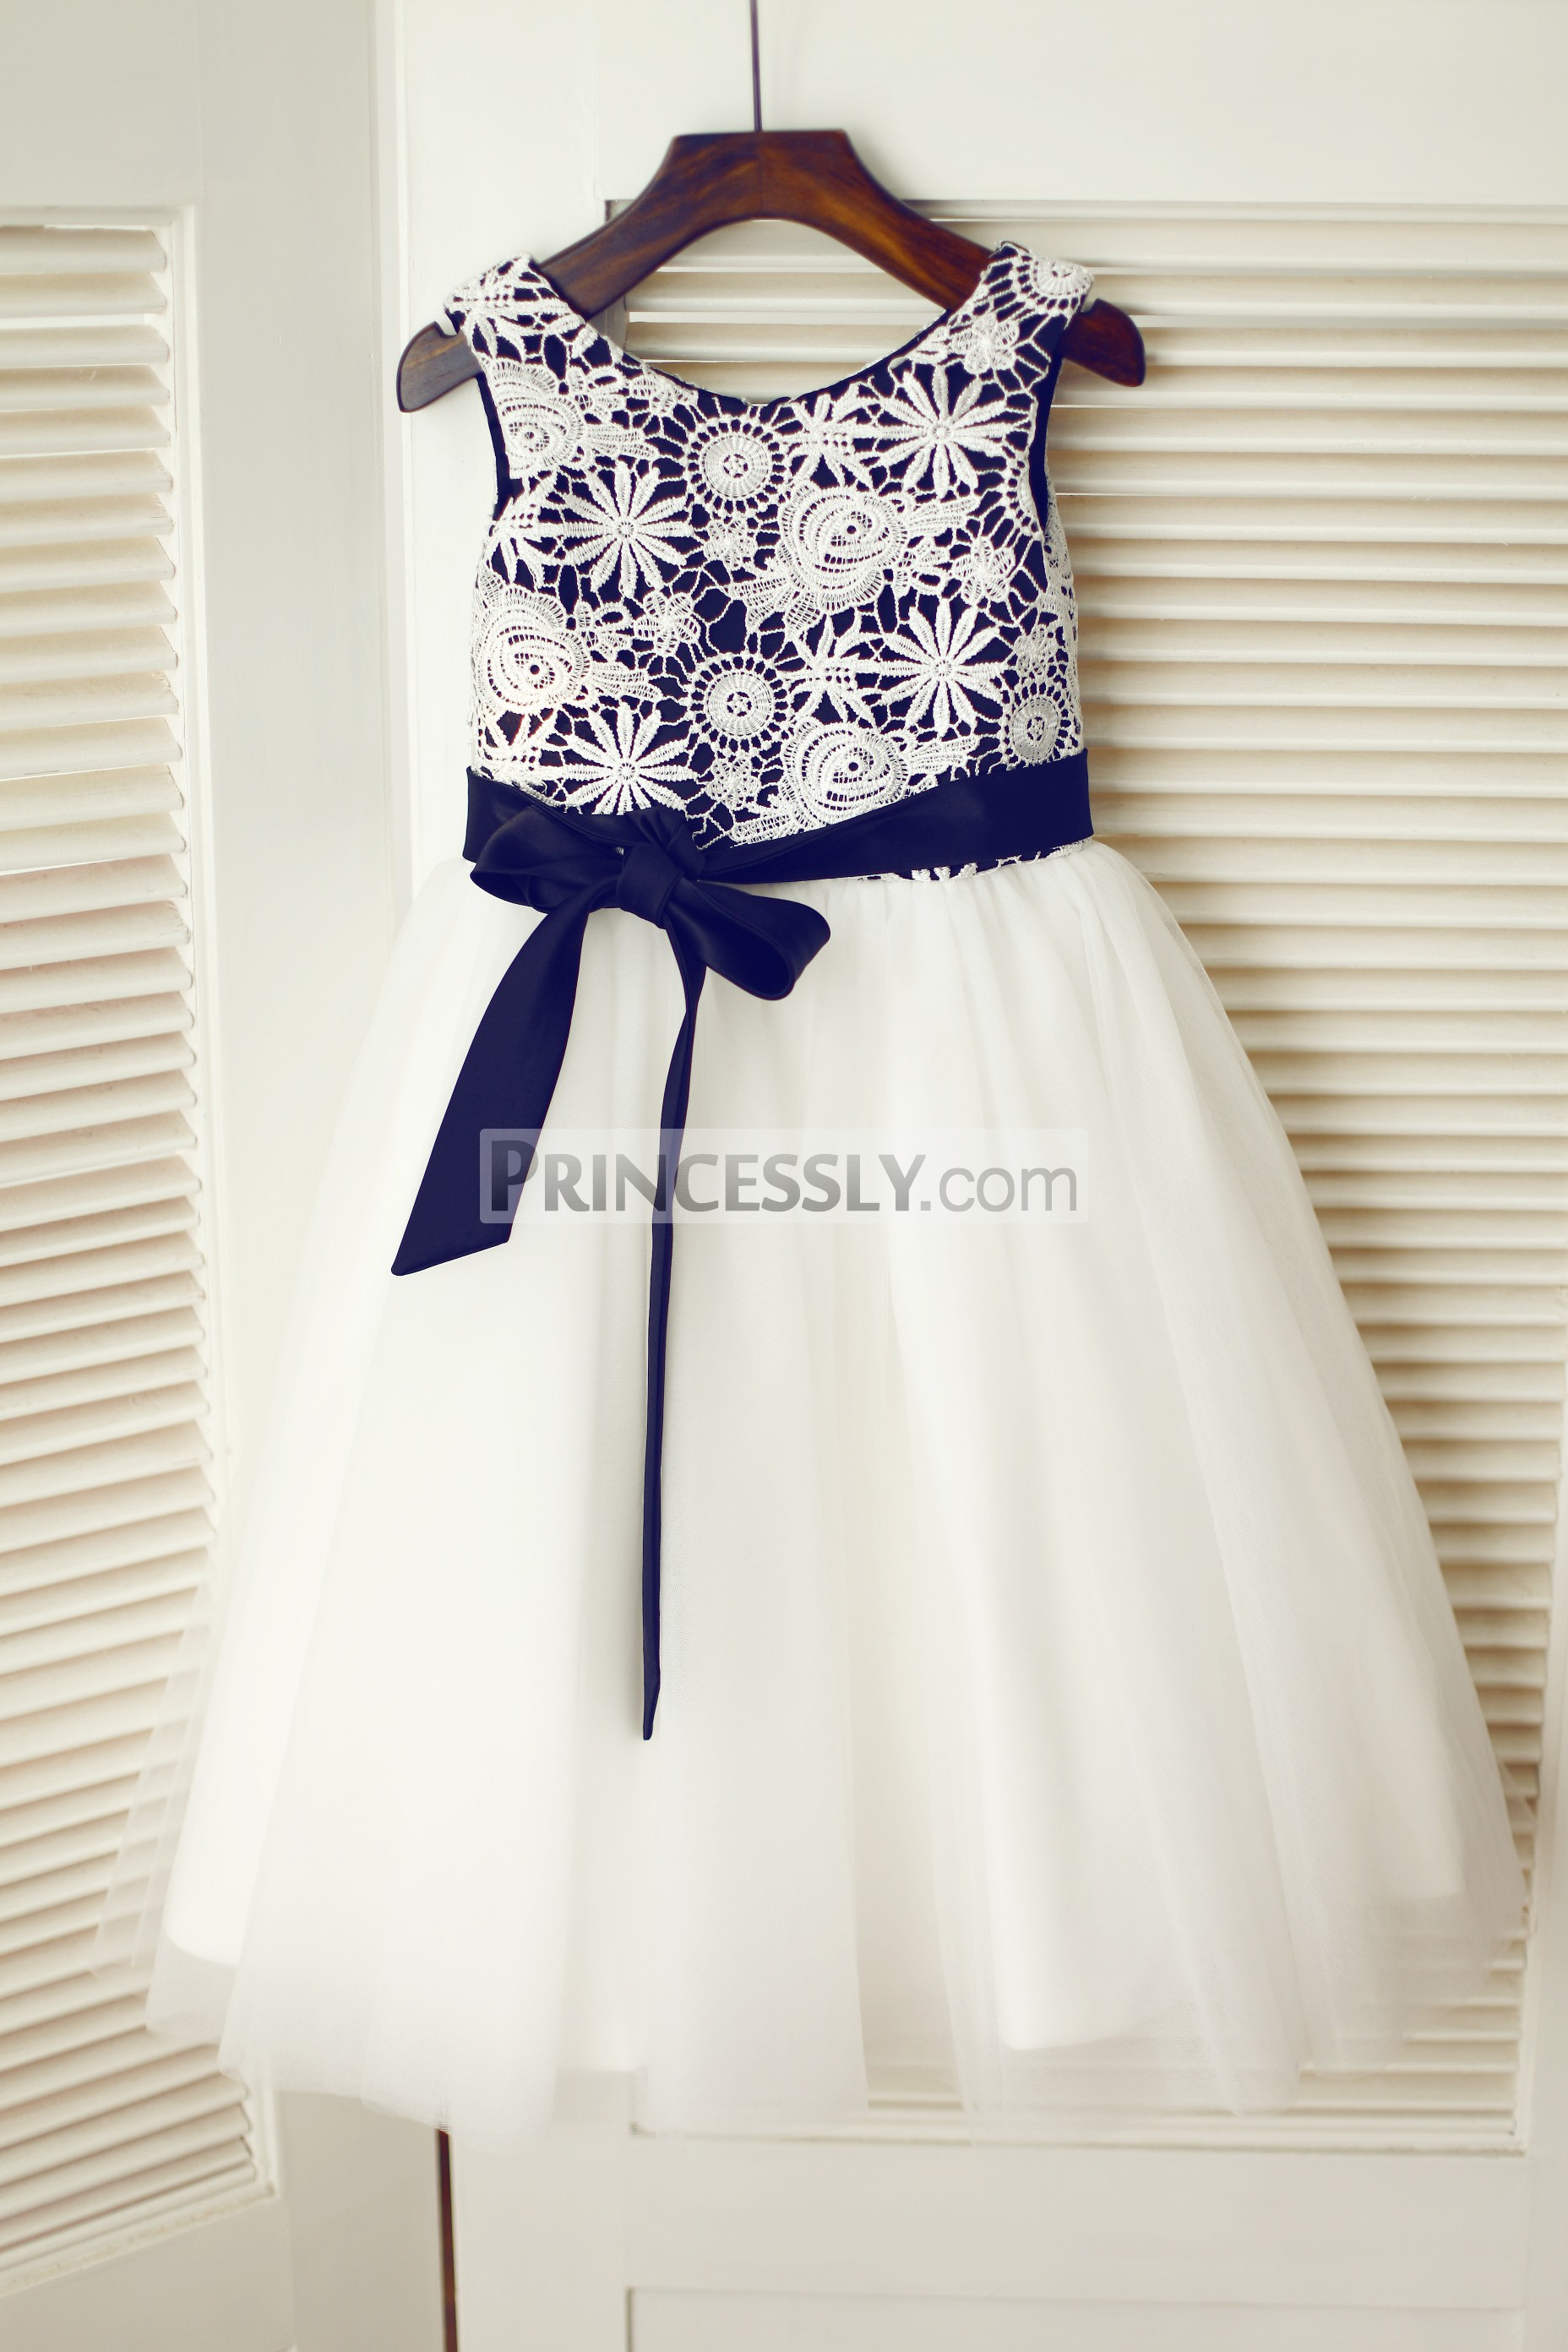 Ivory Crochet Lace Tulle Flower Girl Dress with Black Lining Sash